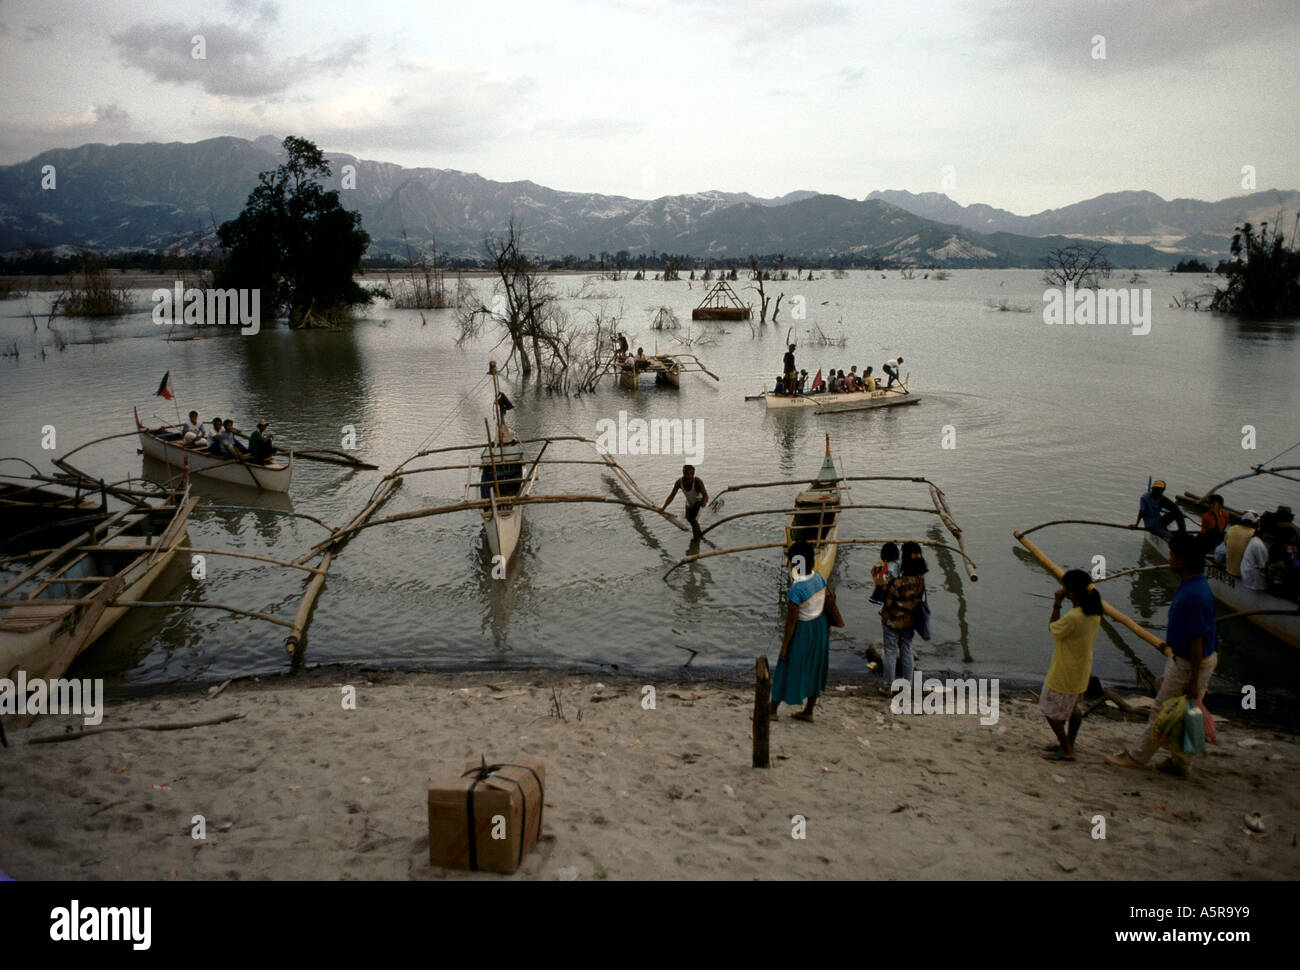 MOUNT PINATUBO DISASTER FEBRUARY 1991 A VIEW OF THE LAKE PINATUBO LOCALS WITH GOODS CROSS THE LAKE WITH SHALLOW BOATS AS IT IS - Stock Image